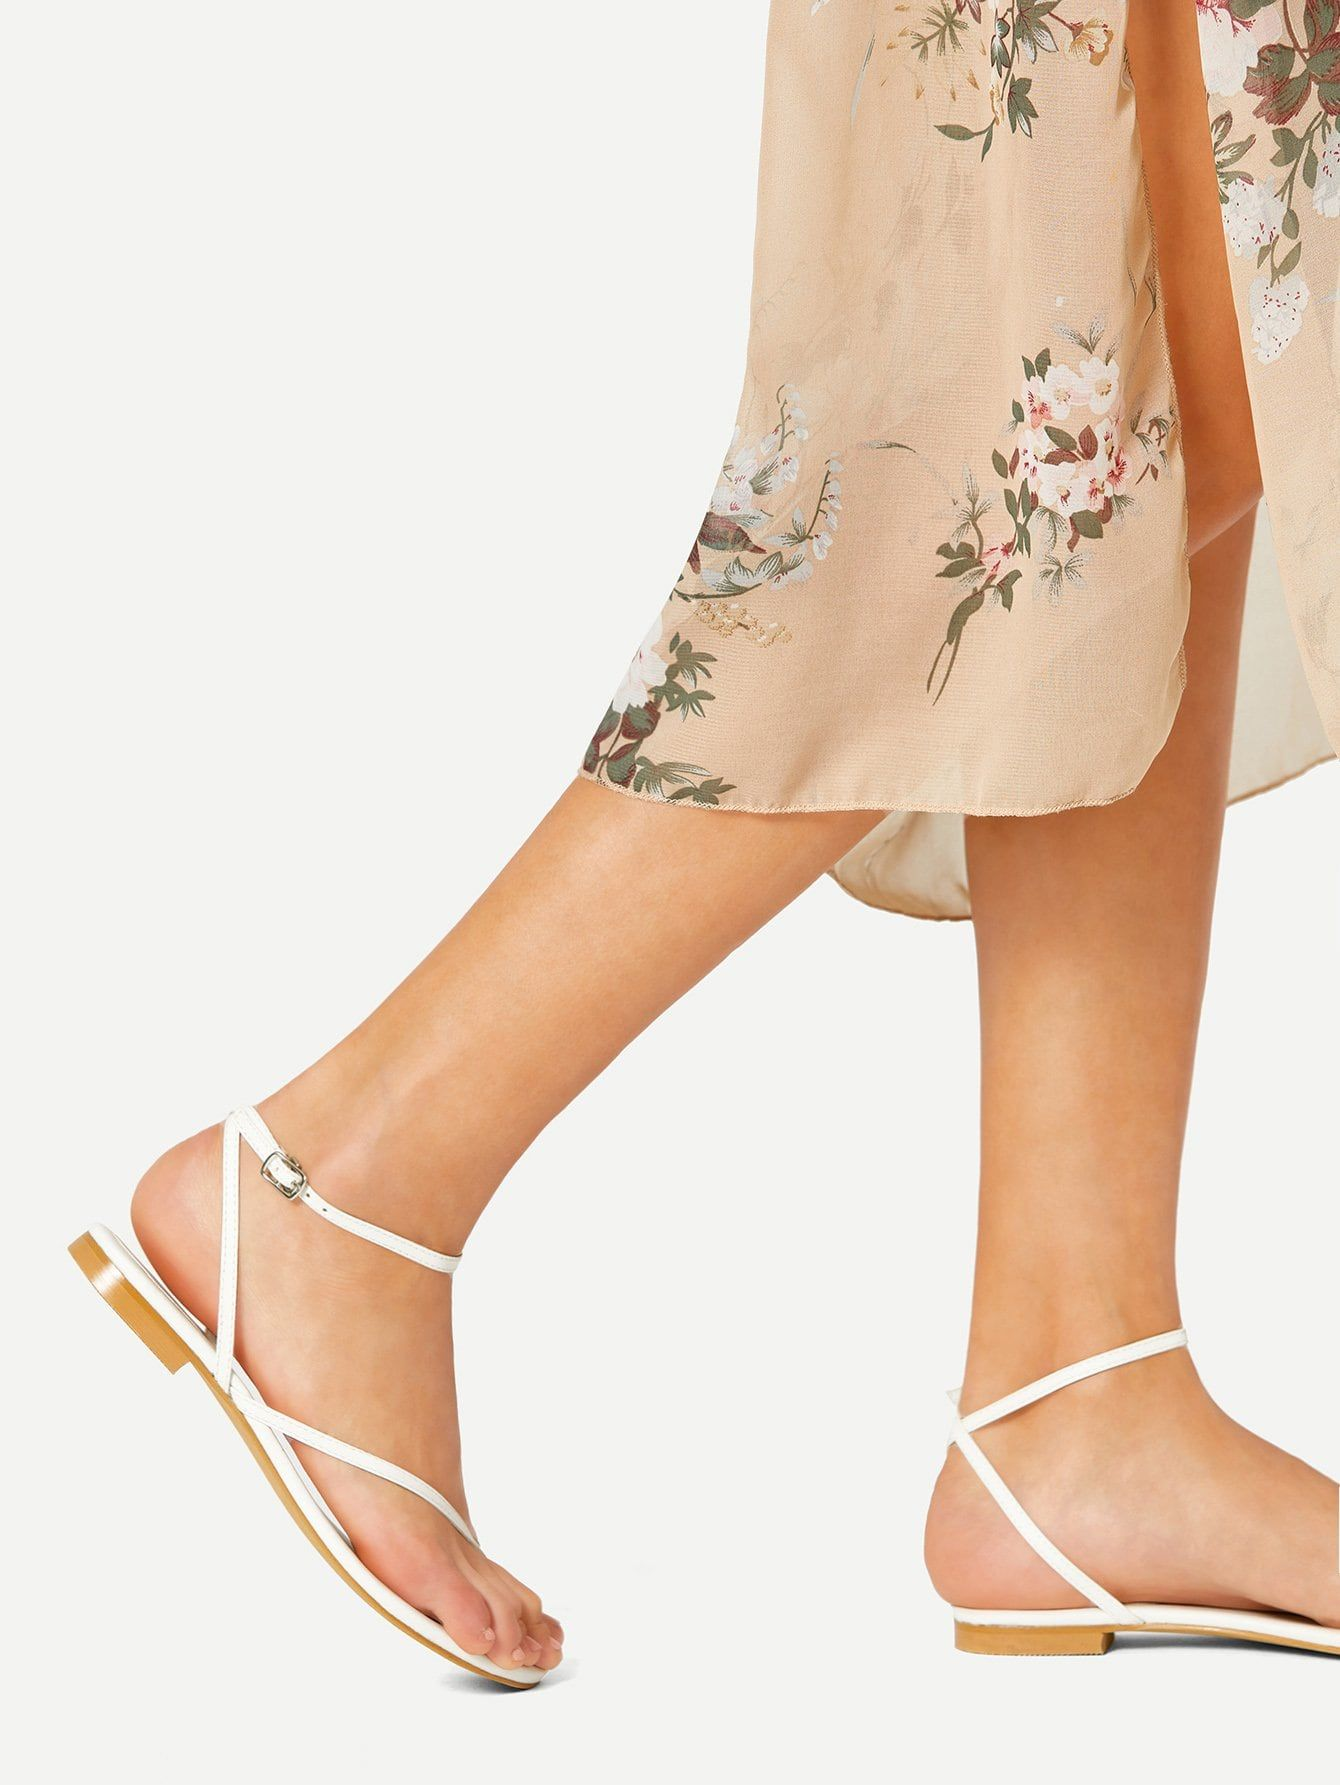 c10914aba Casual Toe Post Criss Cross White Strappy Toe Ring Flat Sandals ...